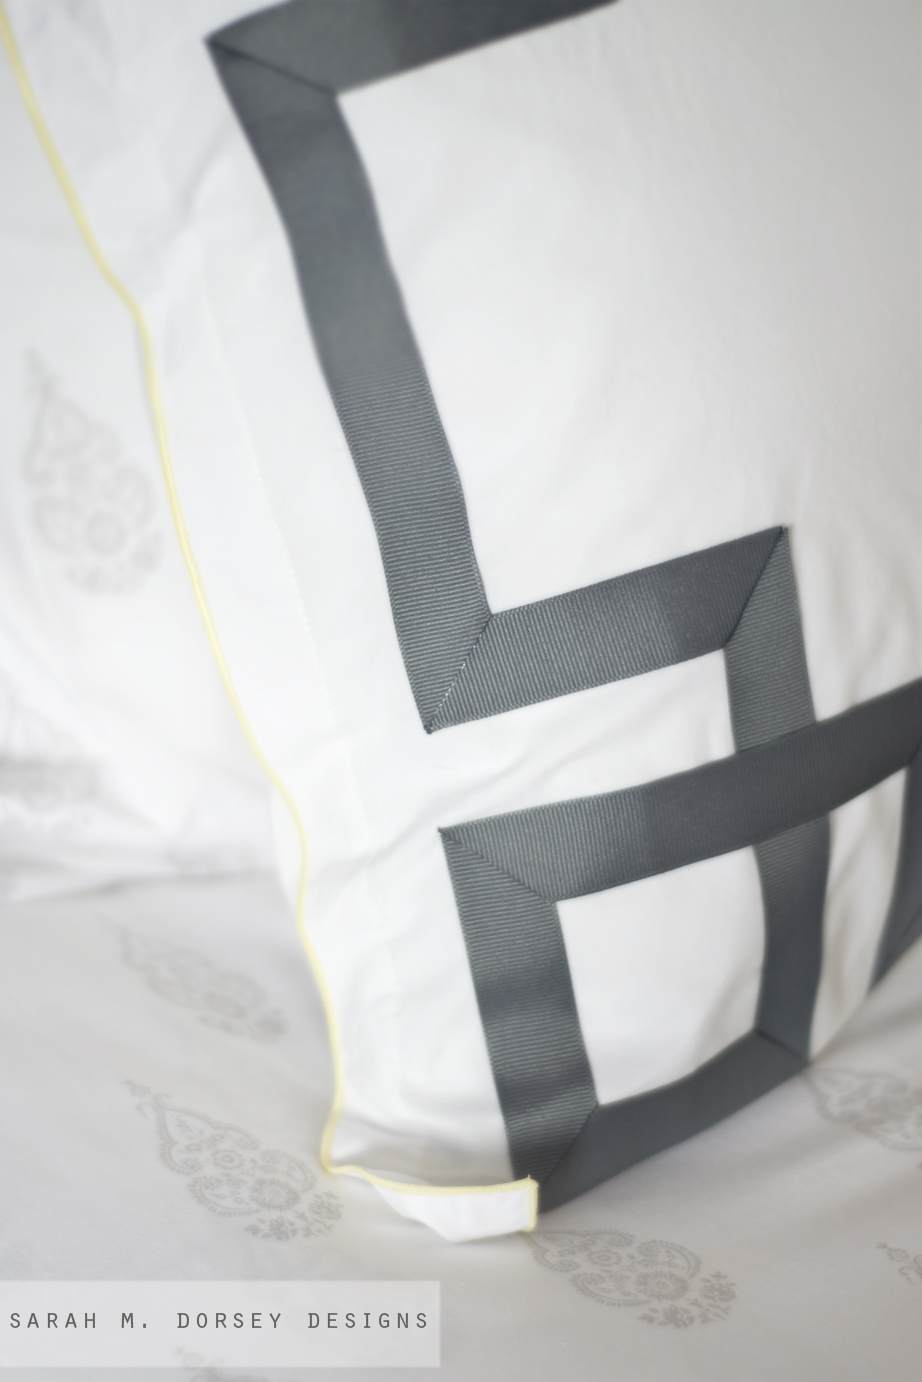 How To Ly Greek Key Trim A Pillow Dorsey Designs